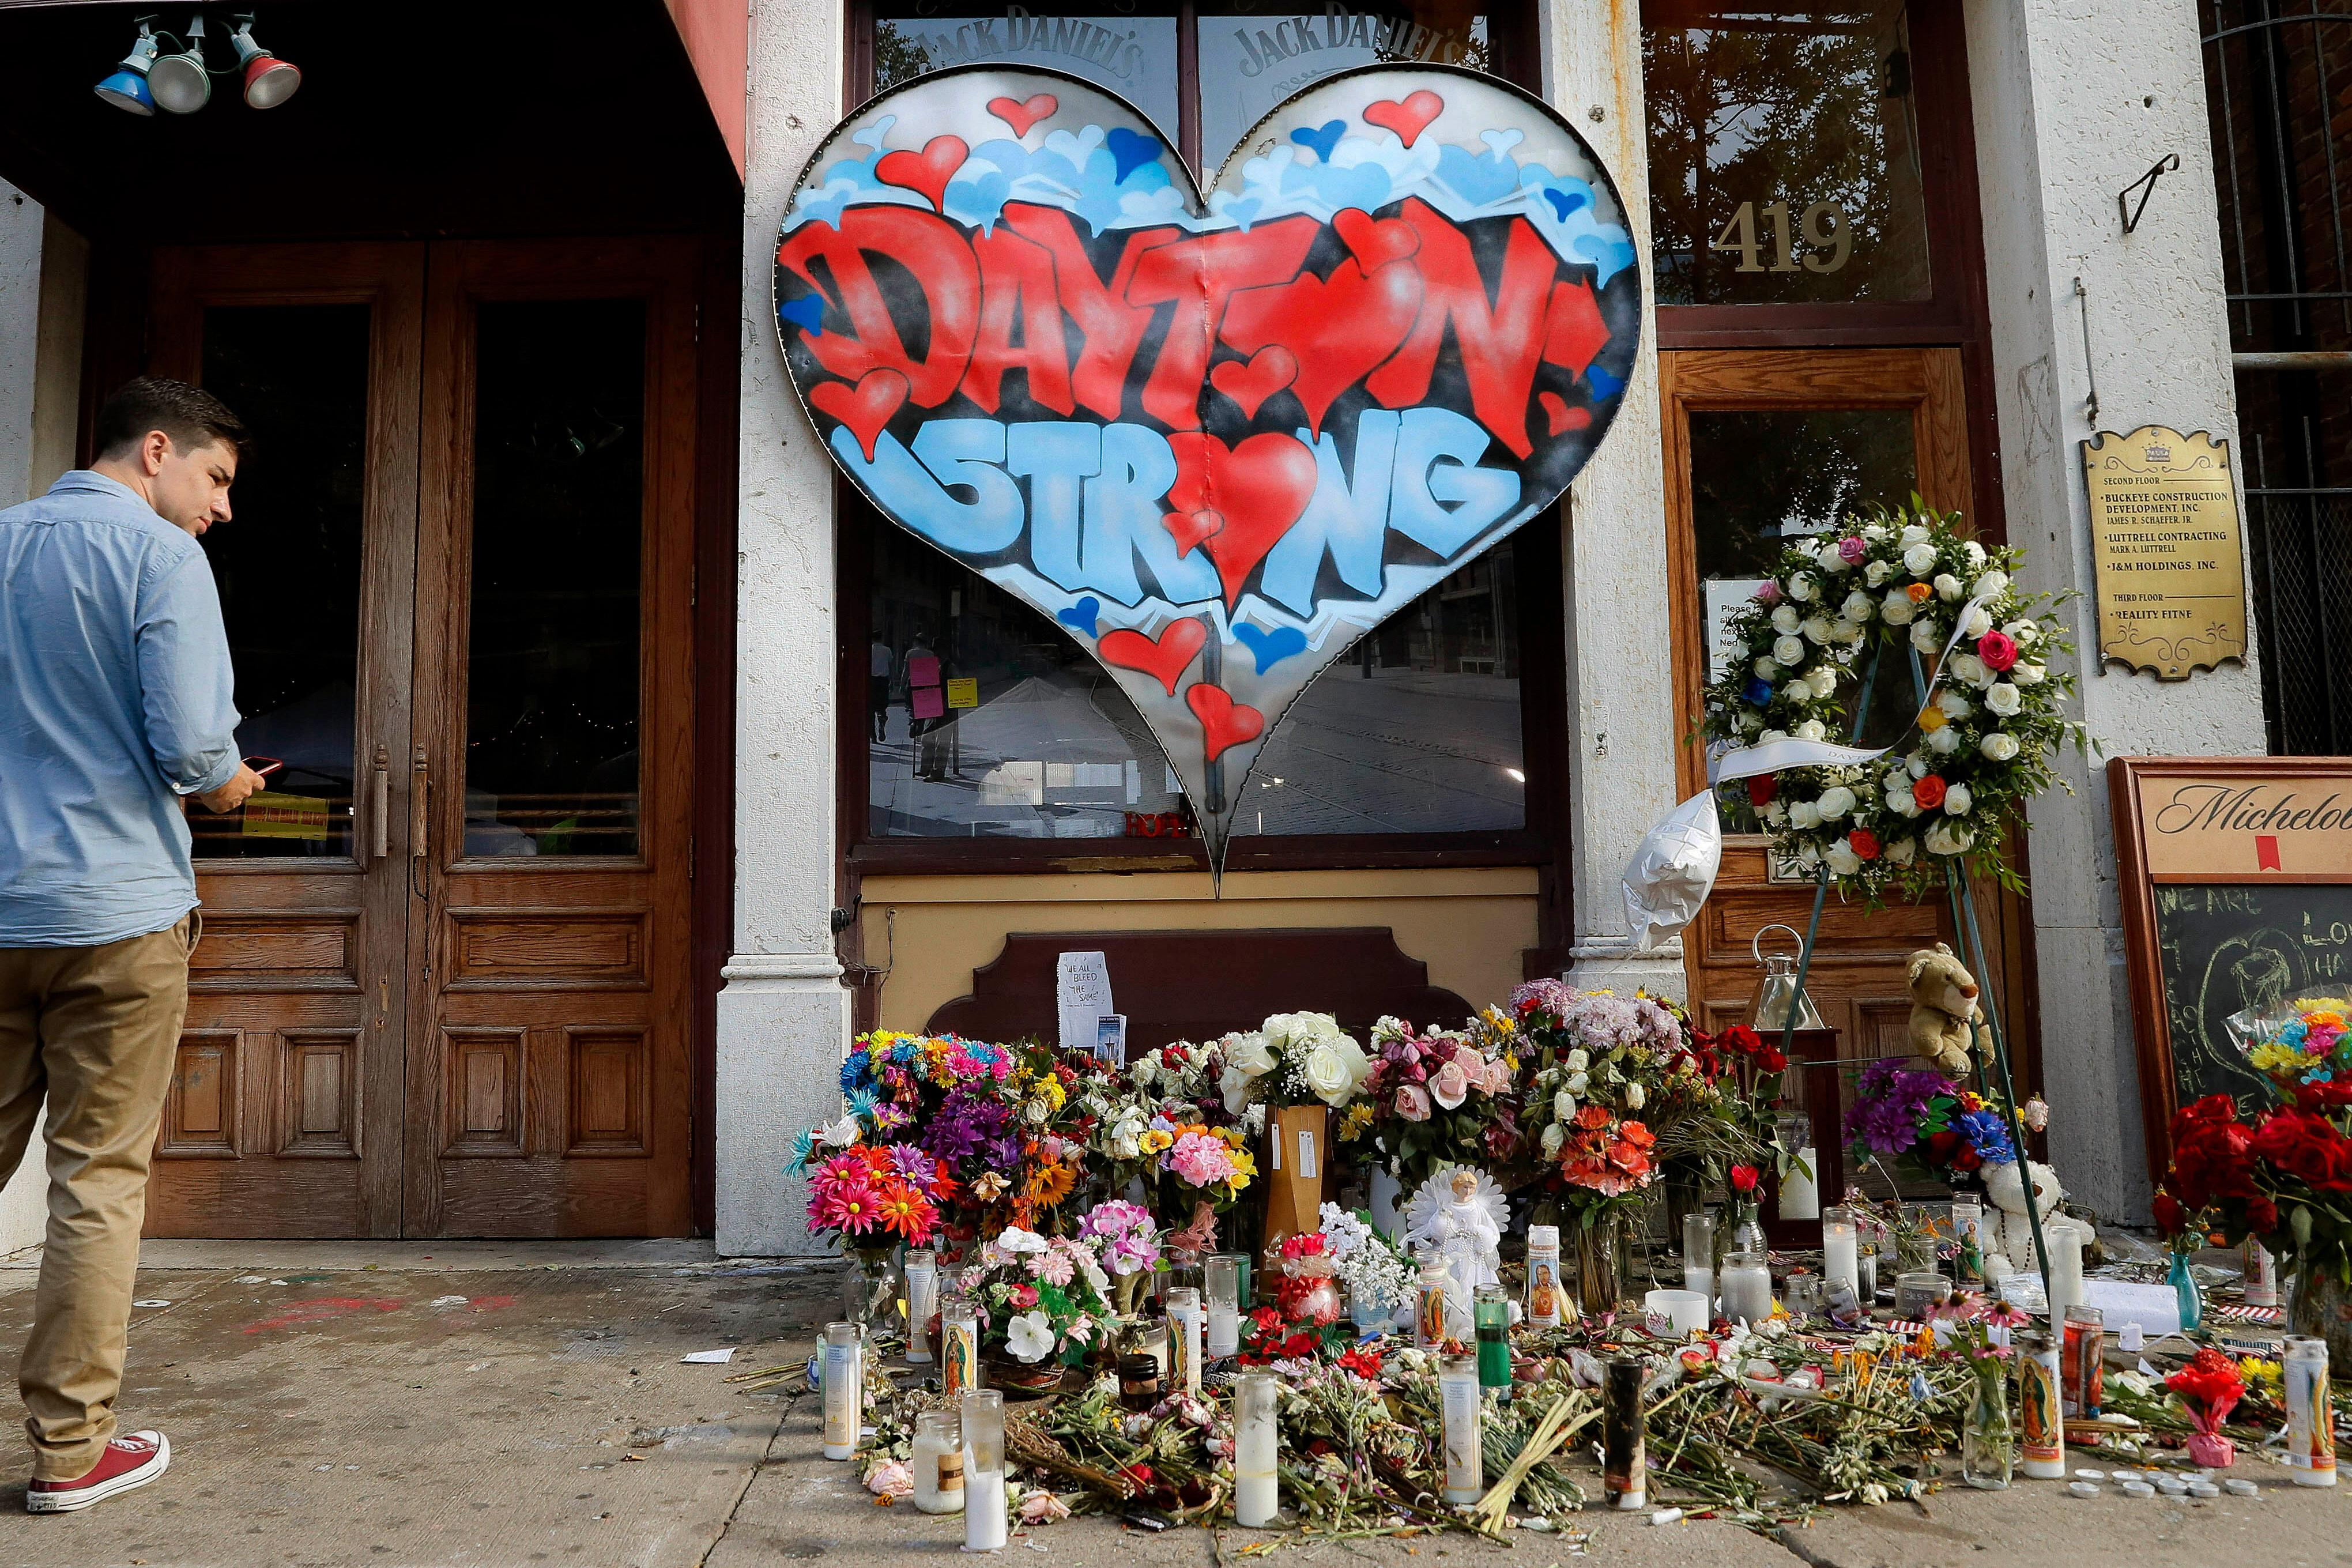 """FILE - In this Aug. 7, 2019 file photo, a pedestrian passes a makeshift memorial for the slain and injured victims of a mass shooting that occurred in the Oregon District early Sunday morning in Dayton, Ohio. Ever since """"Boston Strong"""" became a rallying cry after the Boston Marathon bombing, the idea of """"strong"""" has become an inescapable part of how this country heals after tragedy. (AP Photo/John Minchillo, File)"""